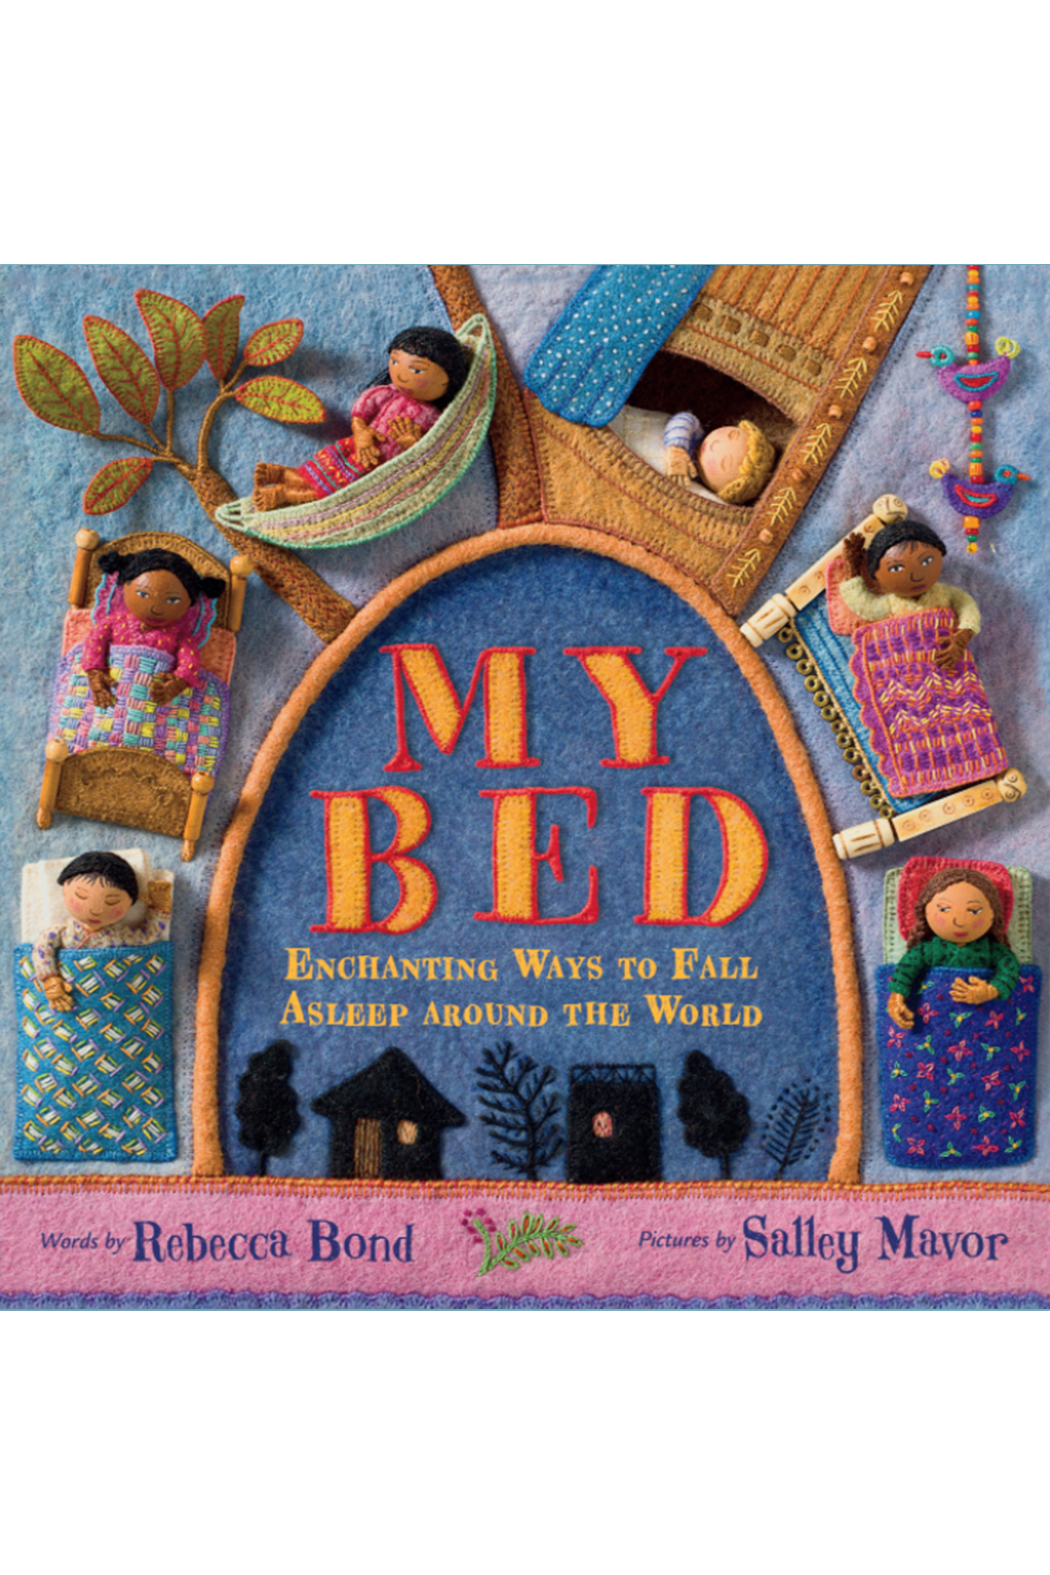 Houghton Mifflin Harcourt  My Bed: Enchanting Ways to Fall Asleep Around the World - Main Image